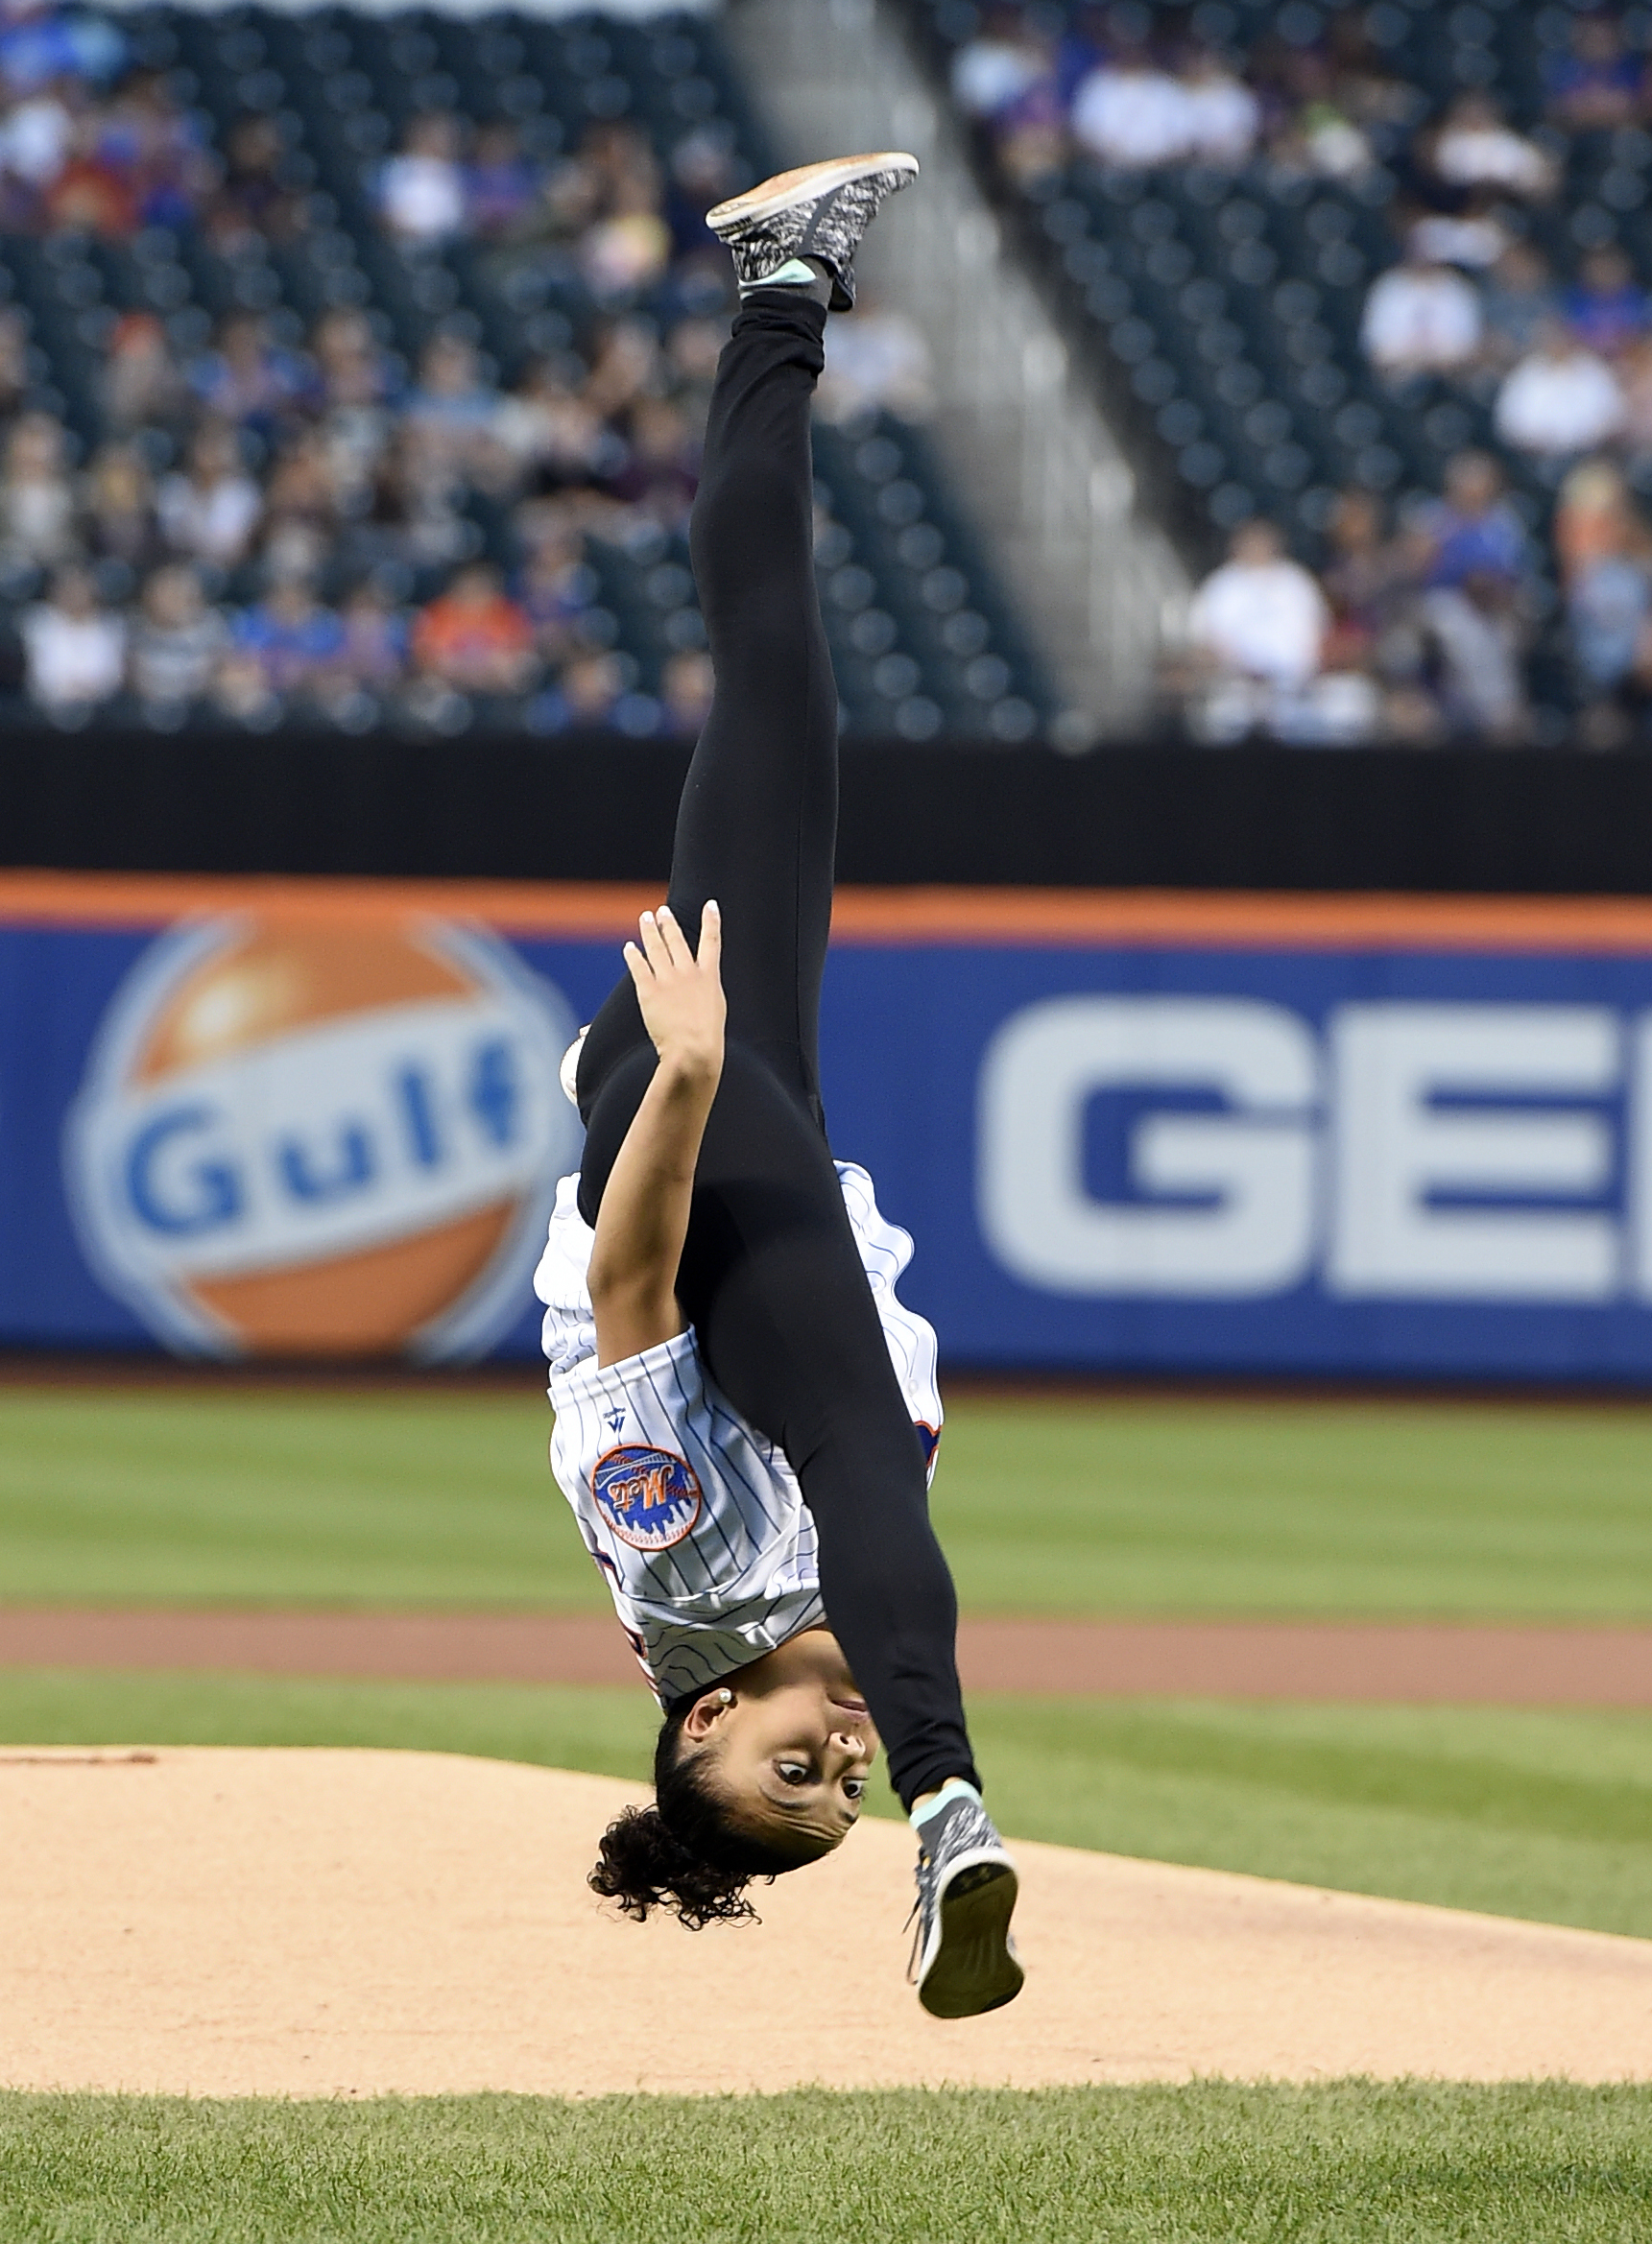 Olympic gold medalist Laurie Hernandez performs flips from the mound before throwing out the ceremonial first pitch before the baseball game between the New York Mets and the Washington Nationals, Saturday, Sept. 3, 2016, in New York. (AP Photo/Kathy Kmon